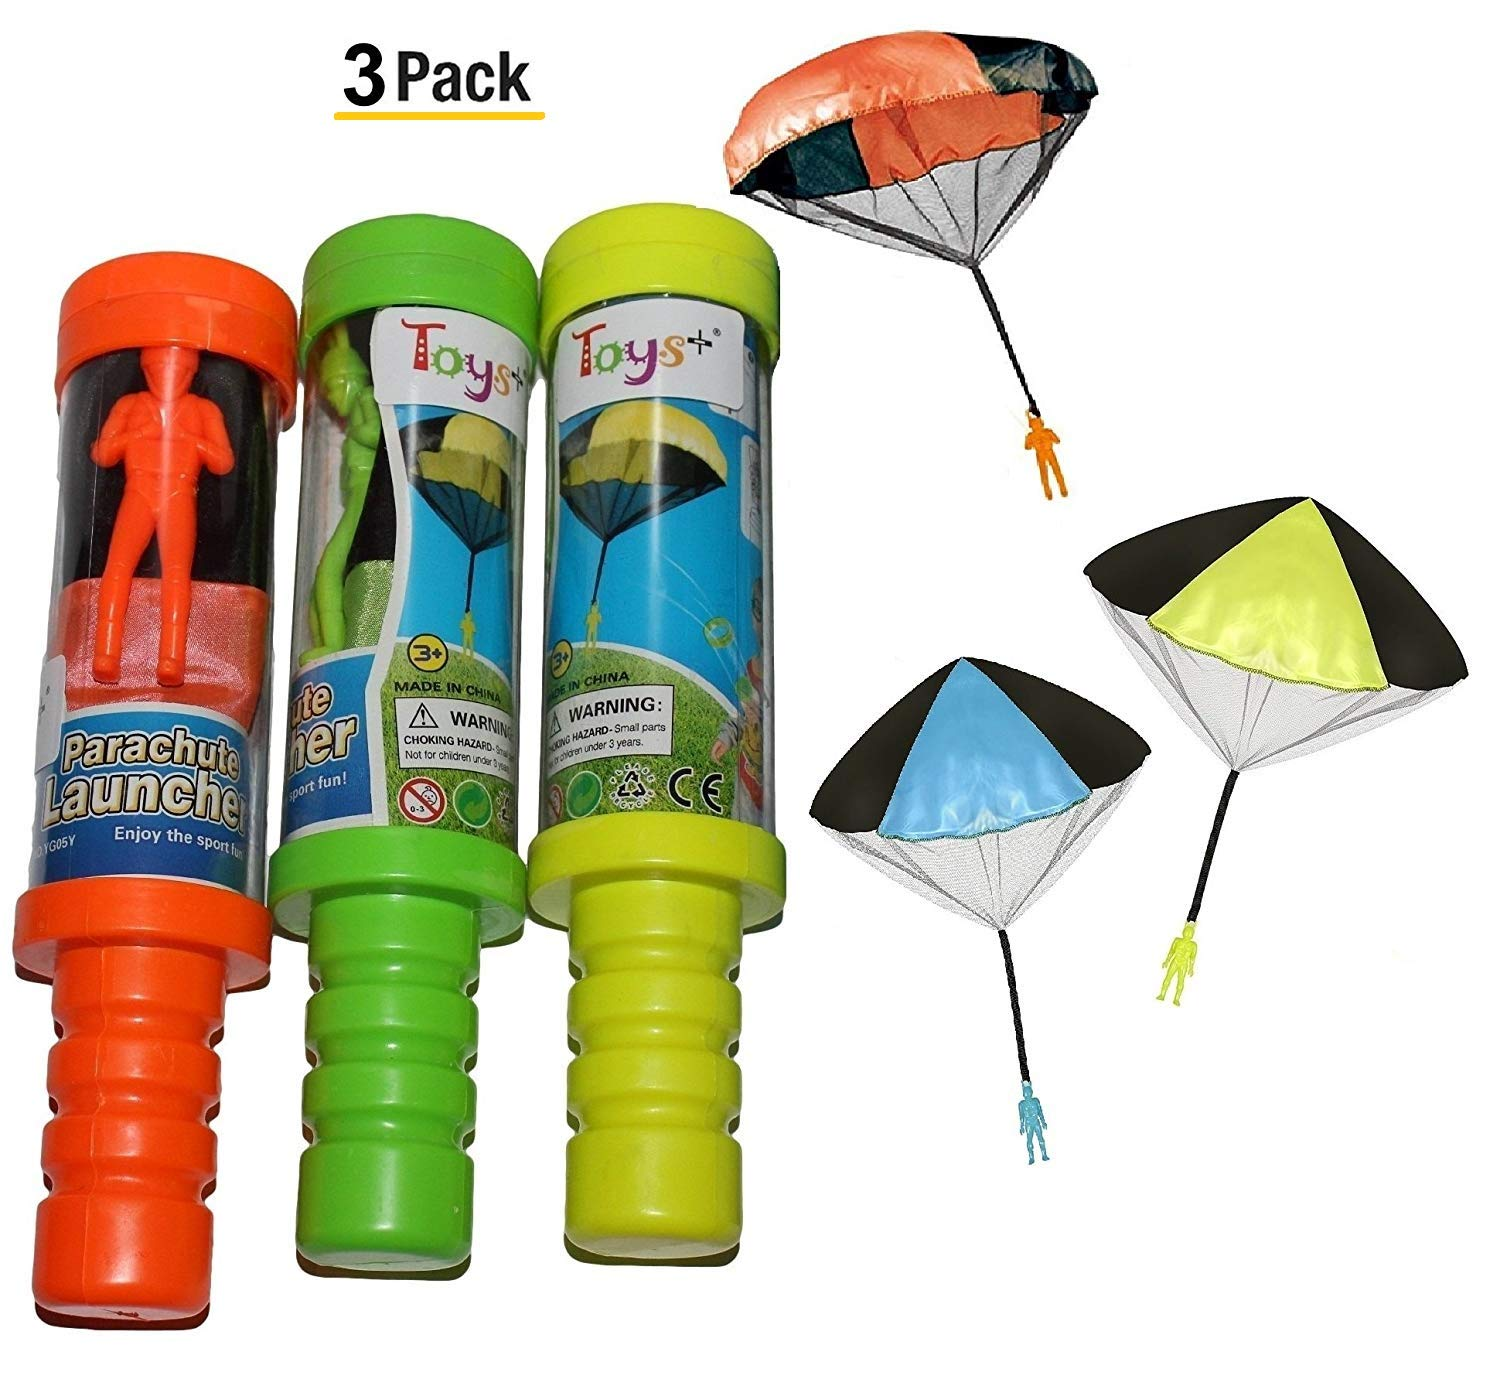 Skydiver Parachute Men 3 Piece Set Toys Tangle Free with Launcher containers Colors and Styles May Vary